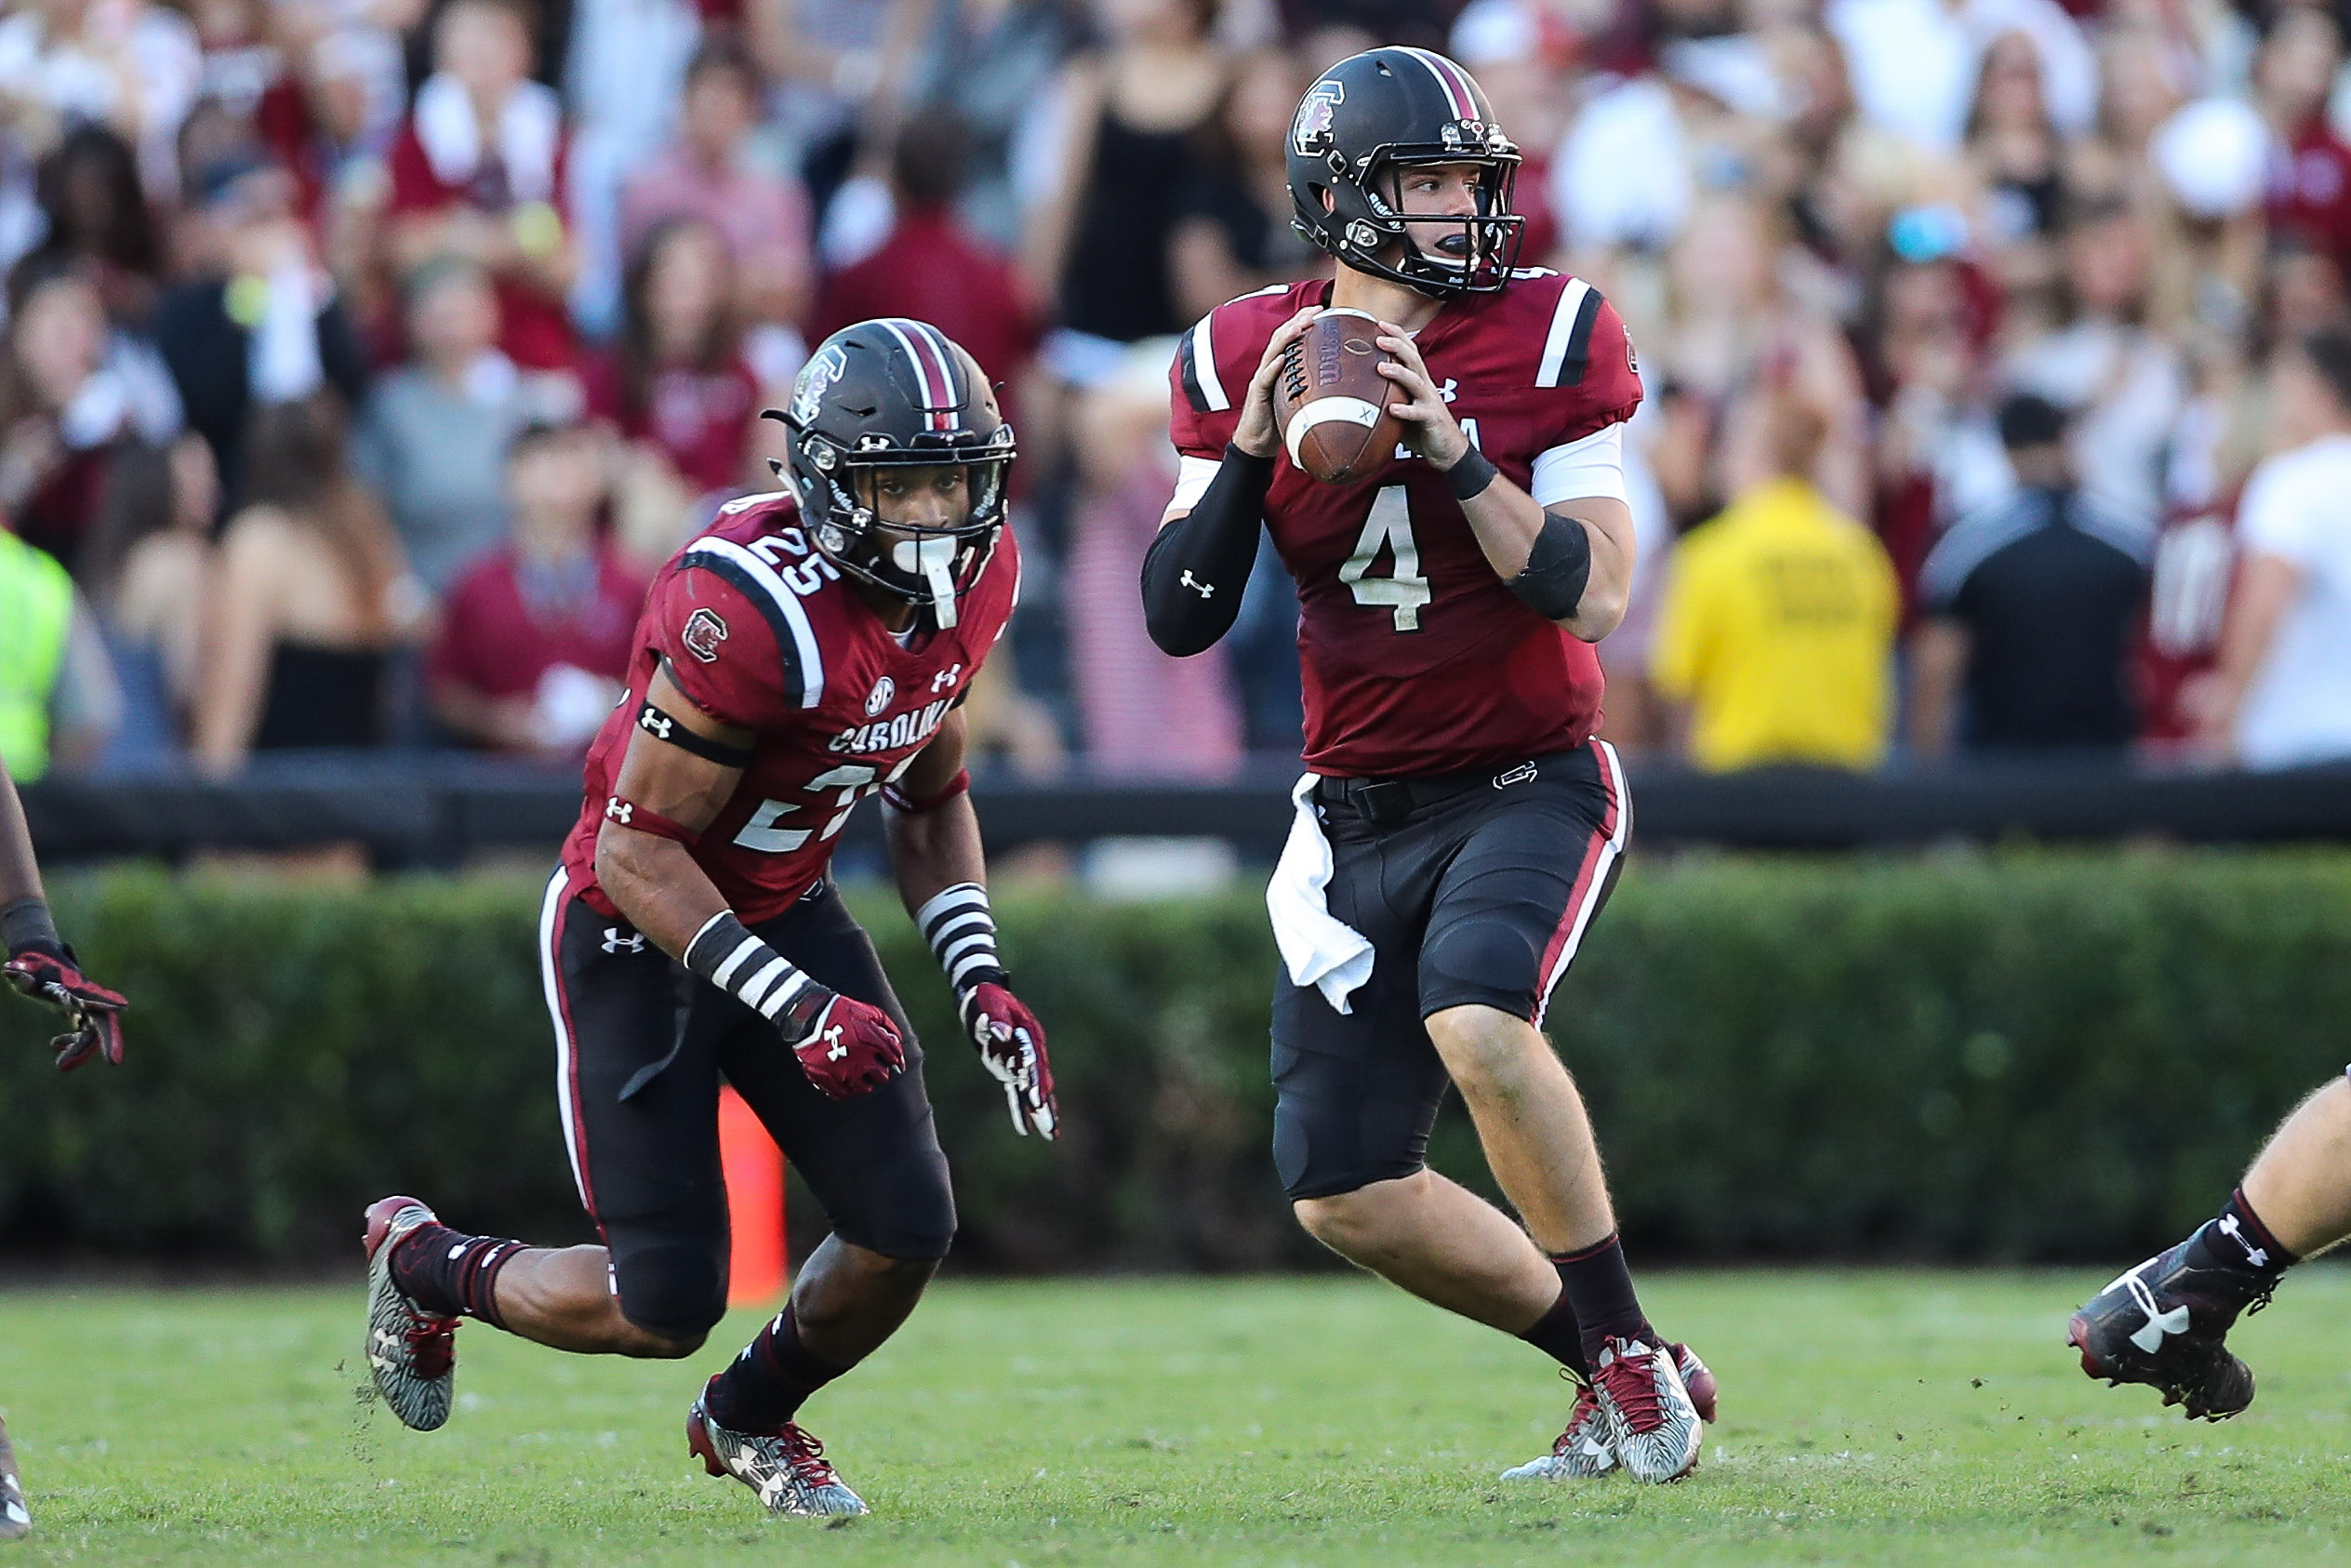 South Carolina Football Spring Game 2017: 5 things to ...